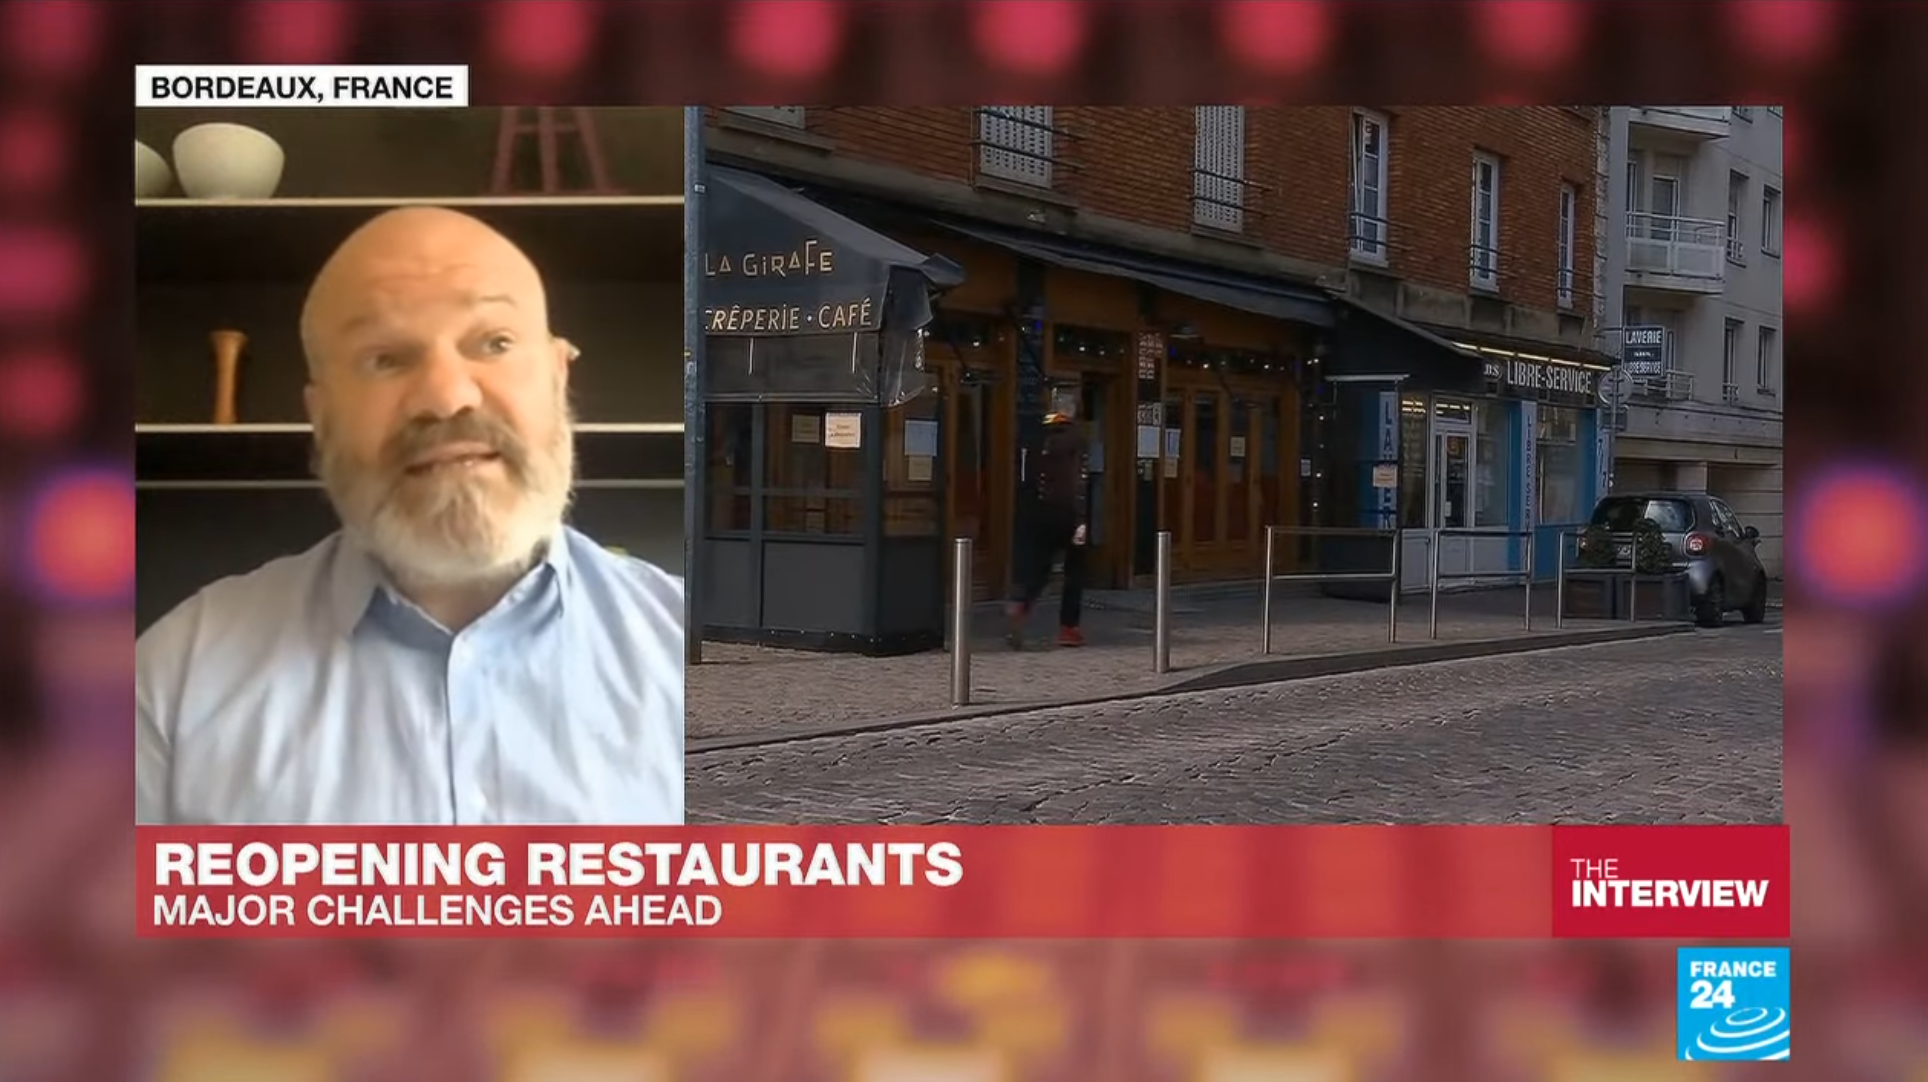 Michelin-starred chef Philippe Etchebest warns about the state of the French restaurant industry.